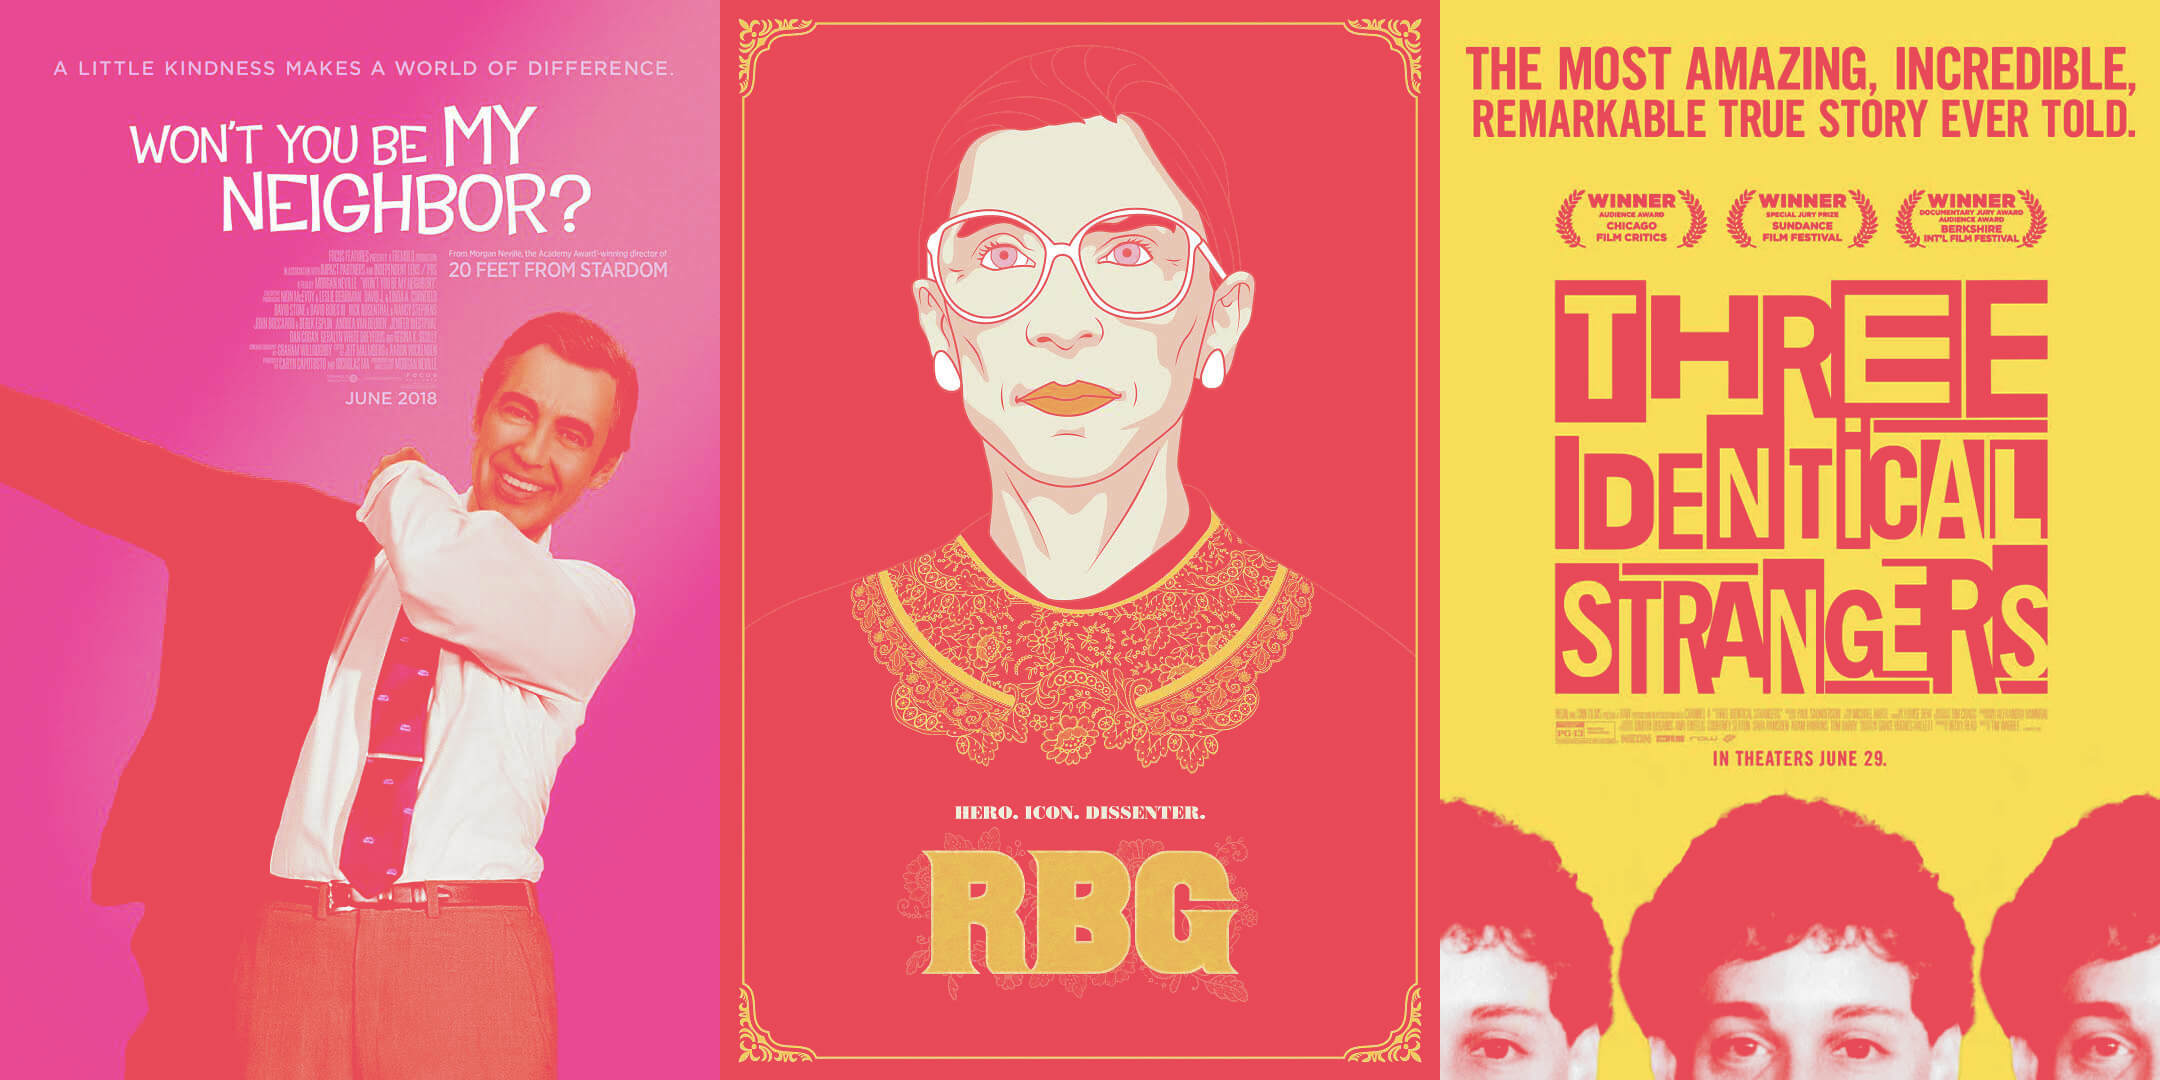 3 documentaries you should watch in 2018